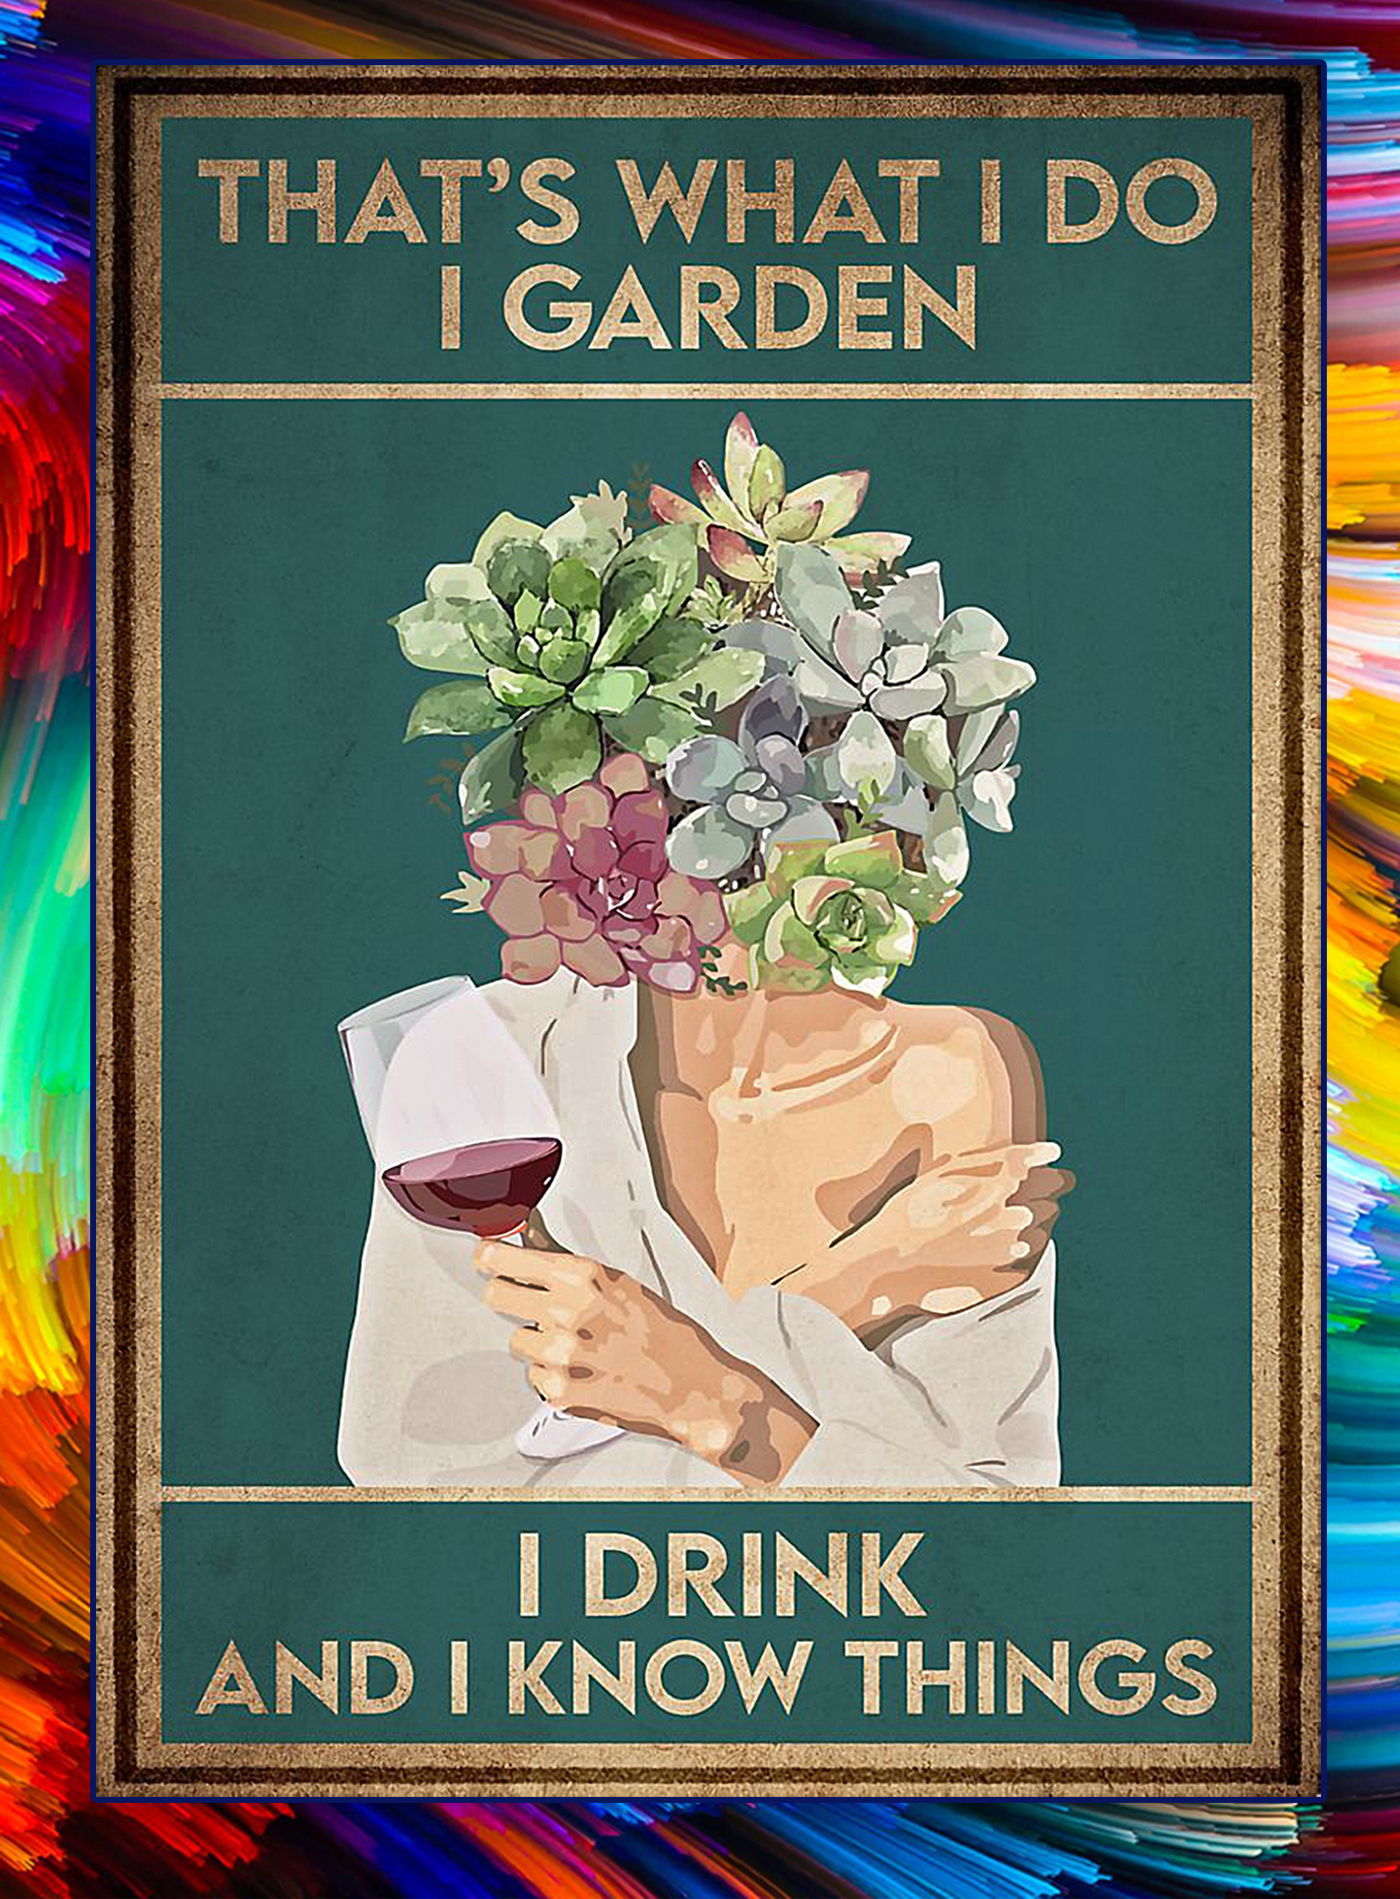 Pot head that's what I do I garden I drink and I know things poster - A1